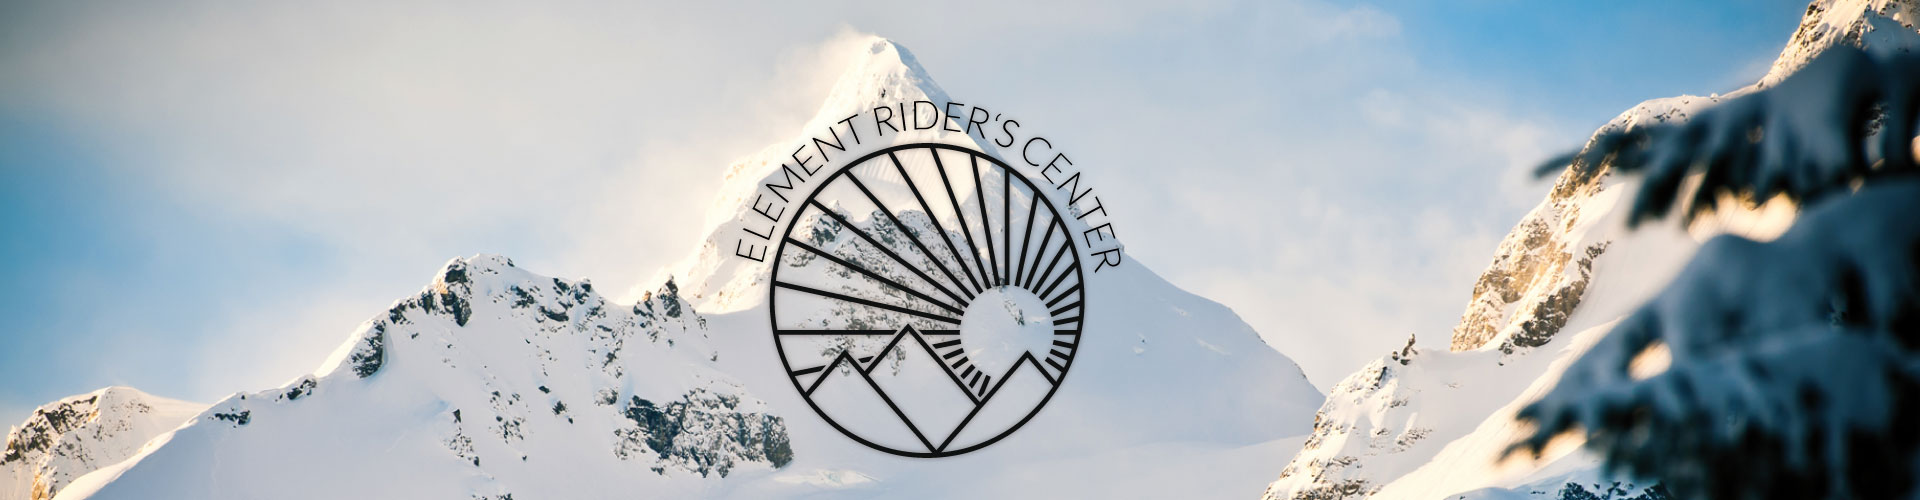 headerriderscenter